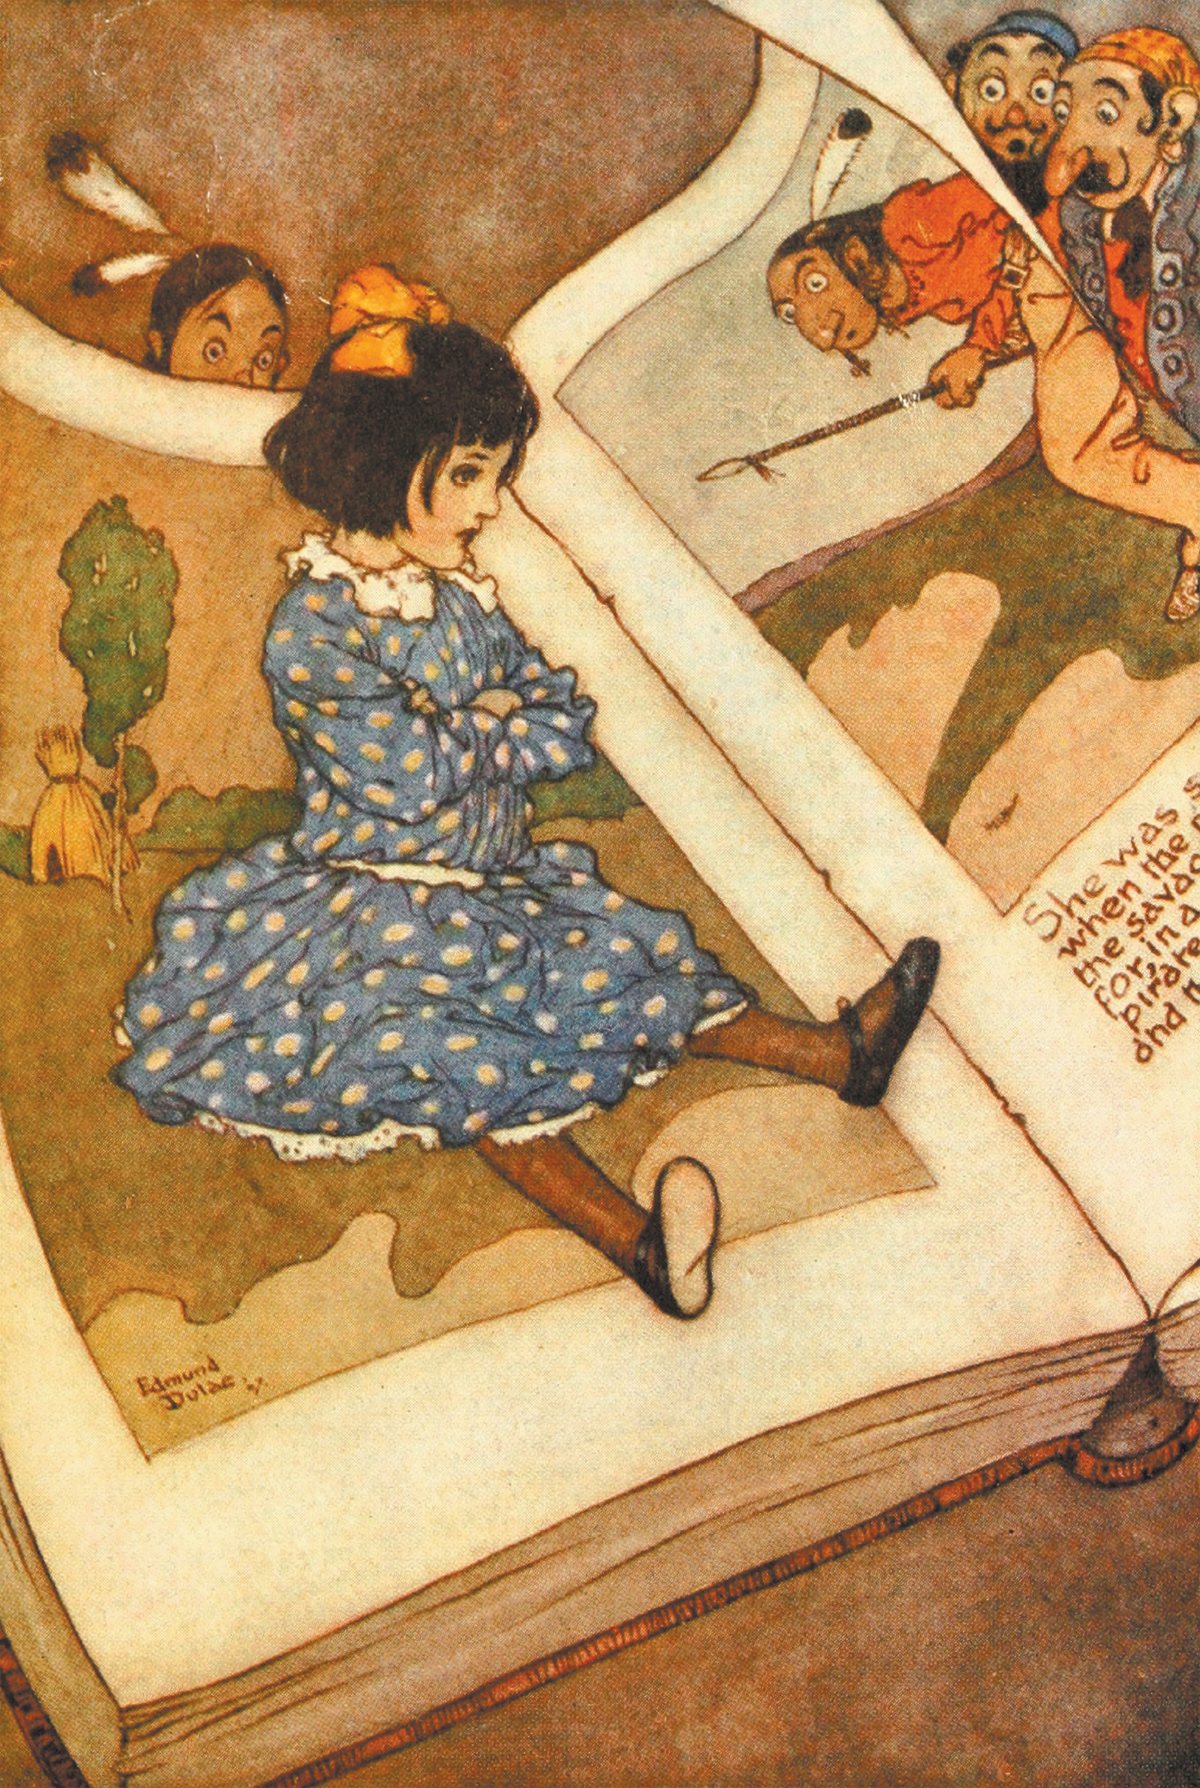 A Little Girl in a Book Illustration by Edmund Dulac